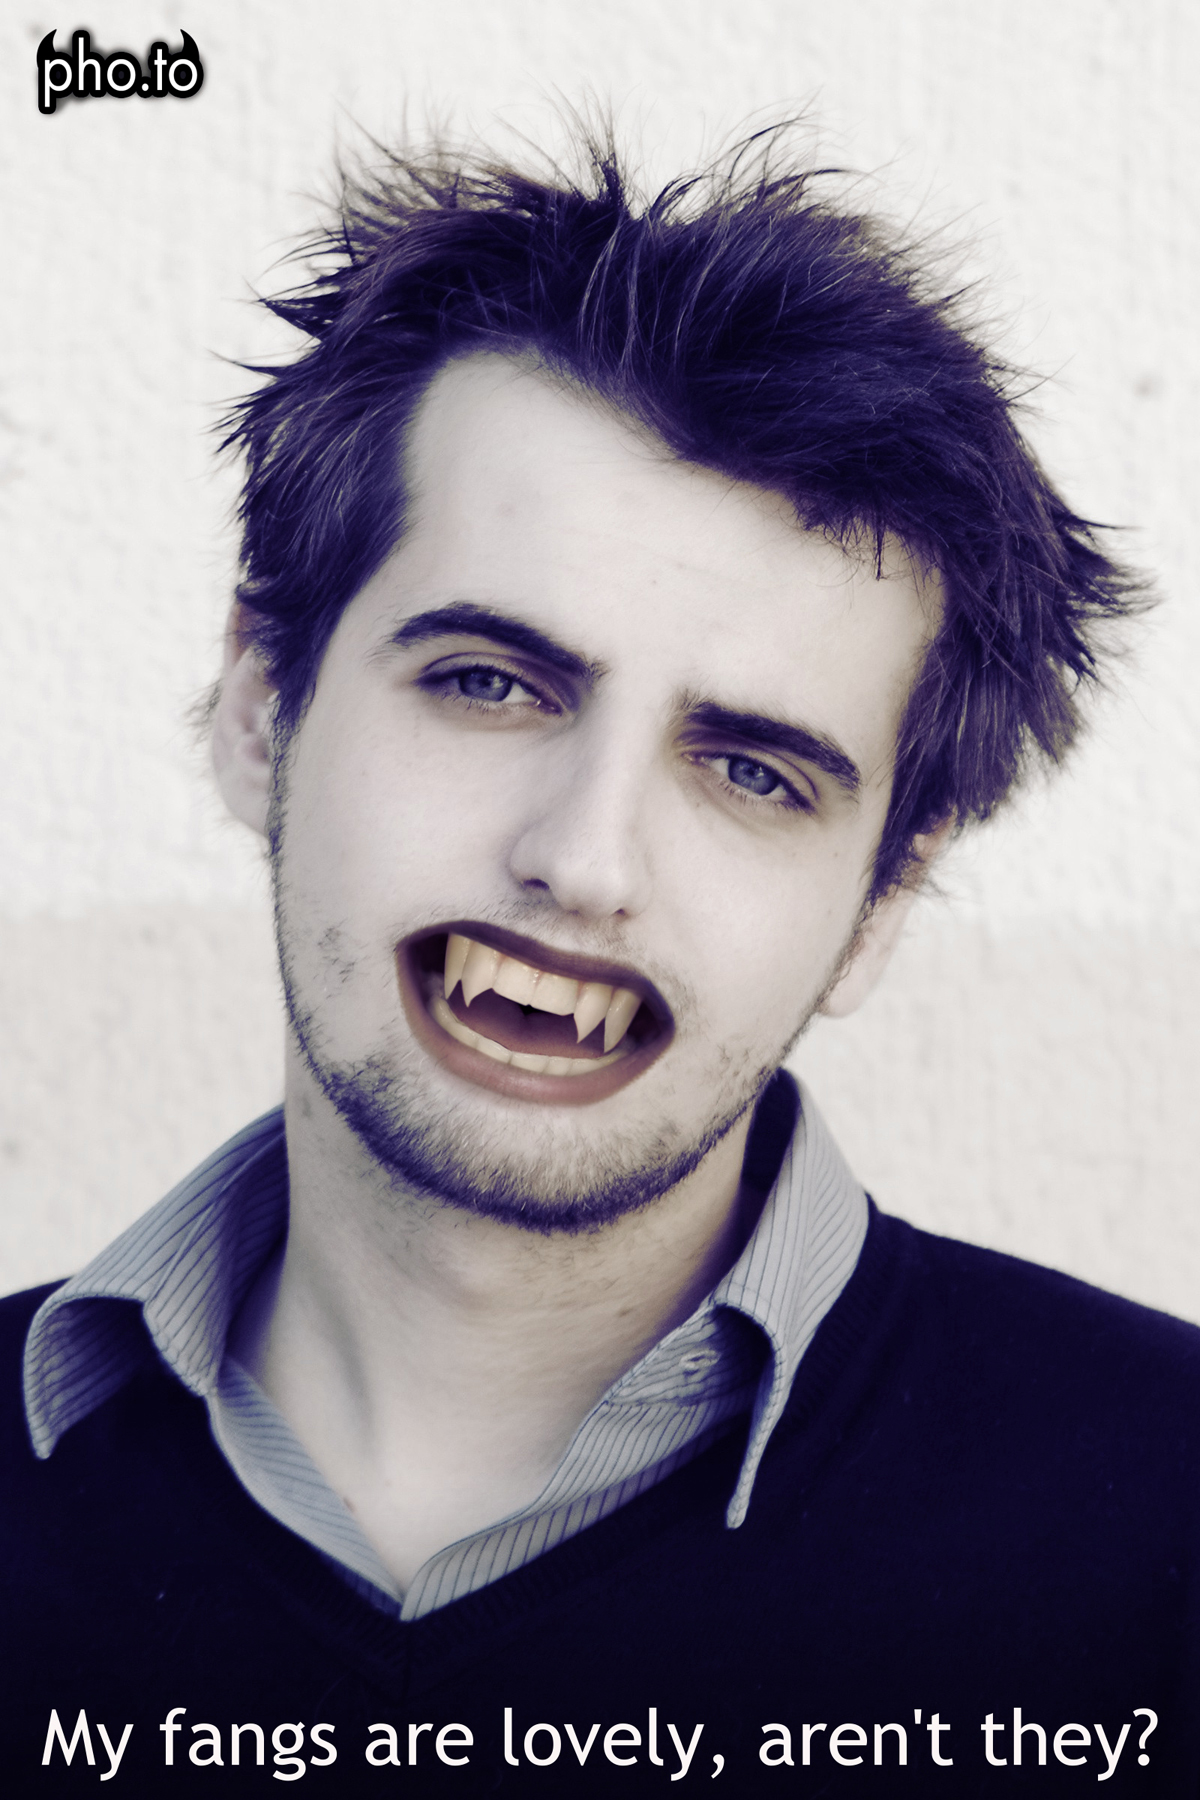 A boy got Halloween fake teeth with the help of 'vampire me' effect.